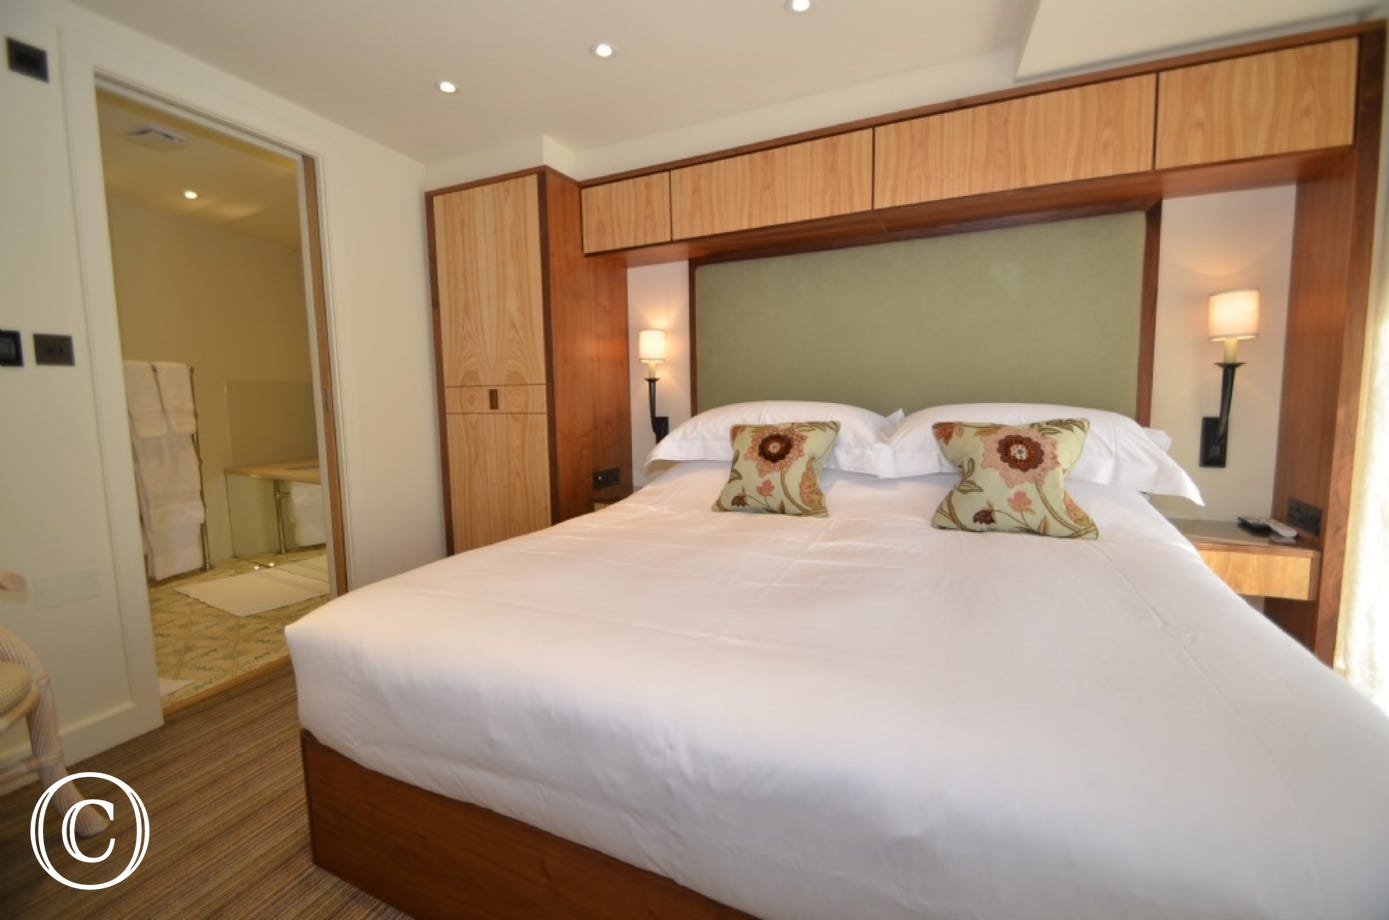 Bedroom two, the Master-Suite is situated up the gorgeous wooden spiral staircase to the first floor. Consisting of a kingsize bed with fitted wardrobes and drawers. Two bedside lamps and a small wall-mounted flat-screen TV.